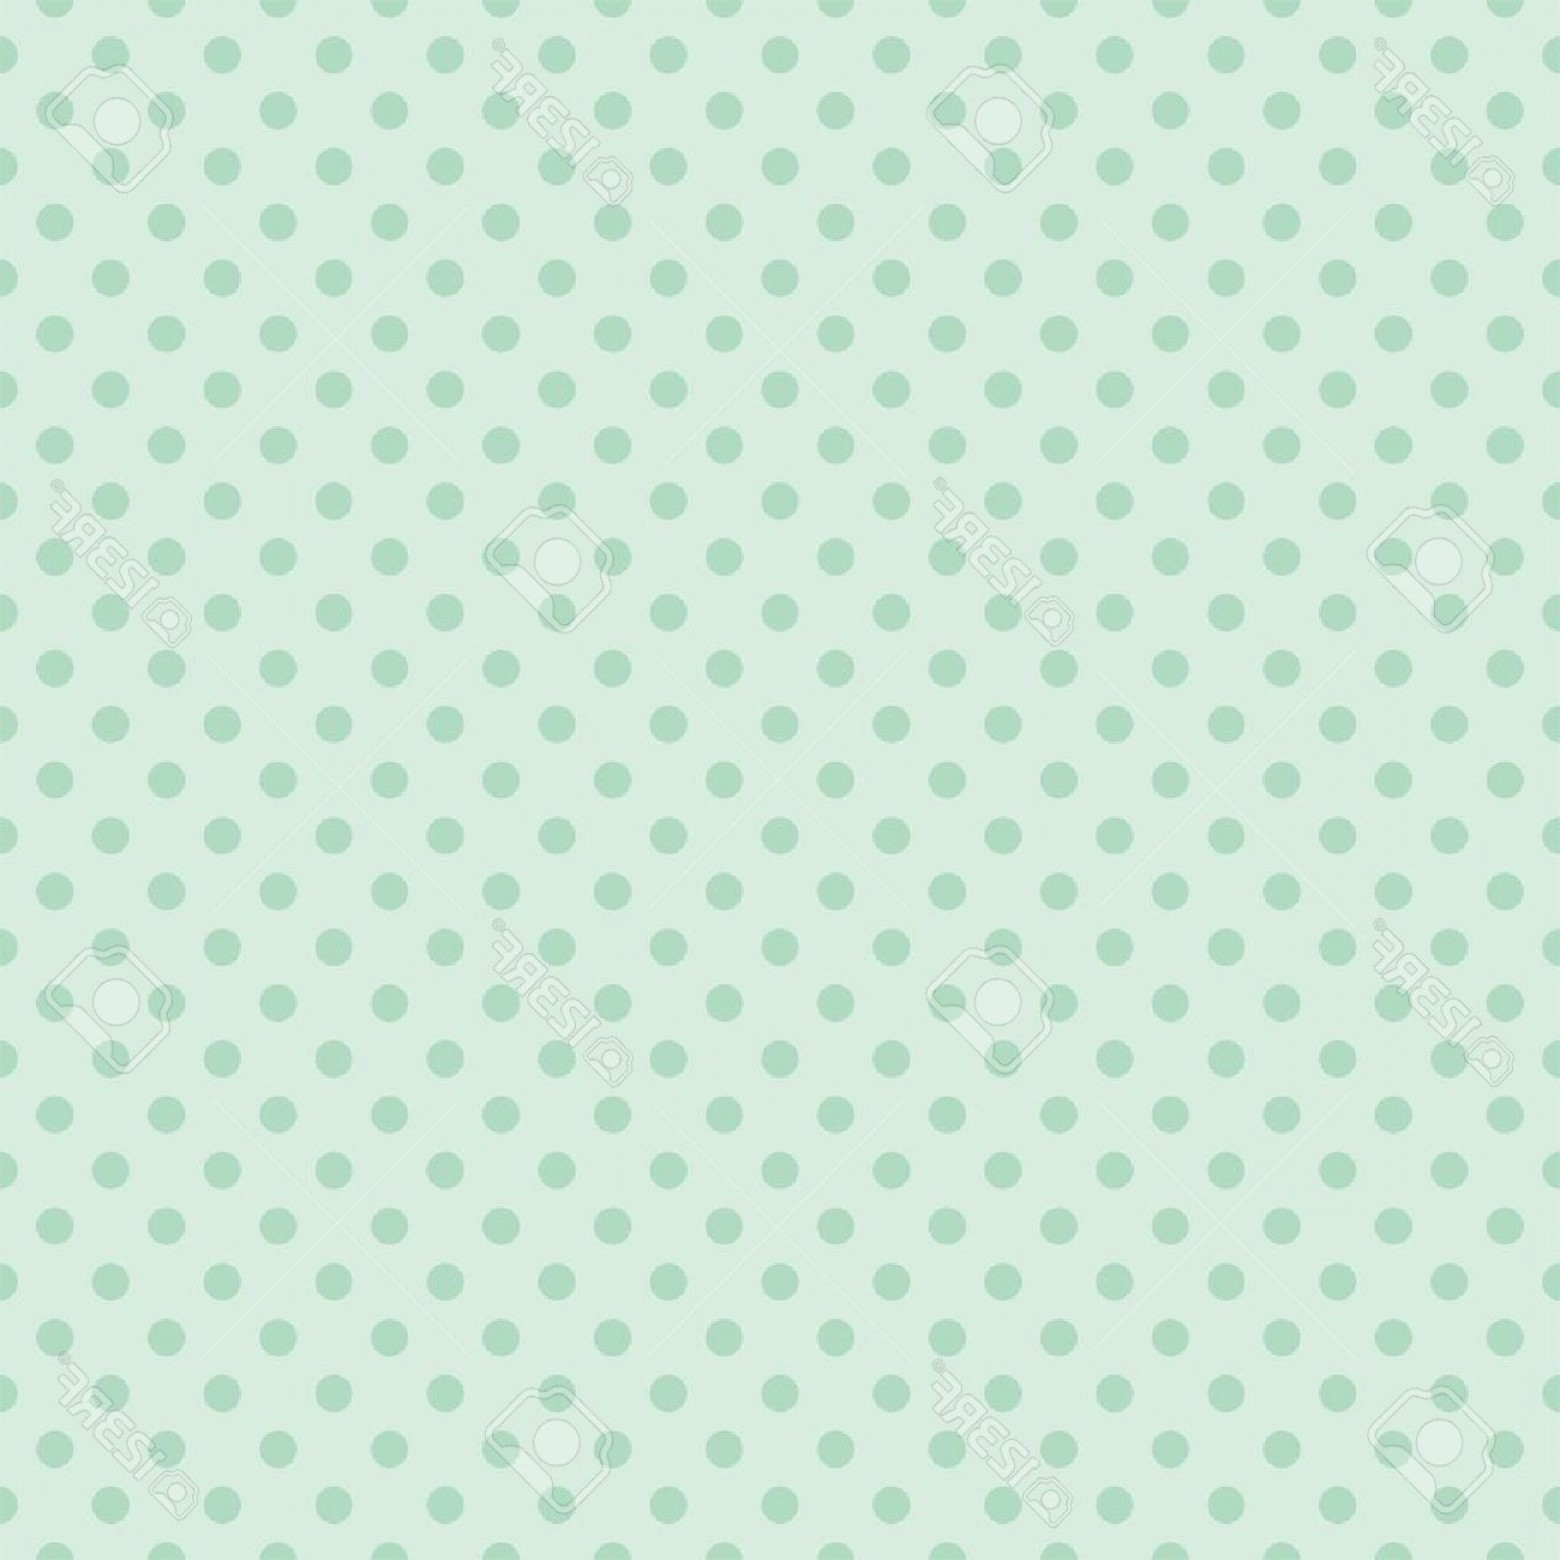 Free Vintage Vector Desktop Wallpaper: Photoseamless Vector Pattern With Dark Mint Green Polka Dots On A Retro Vintage Light Green Background Fo